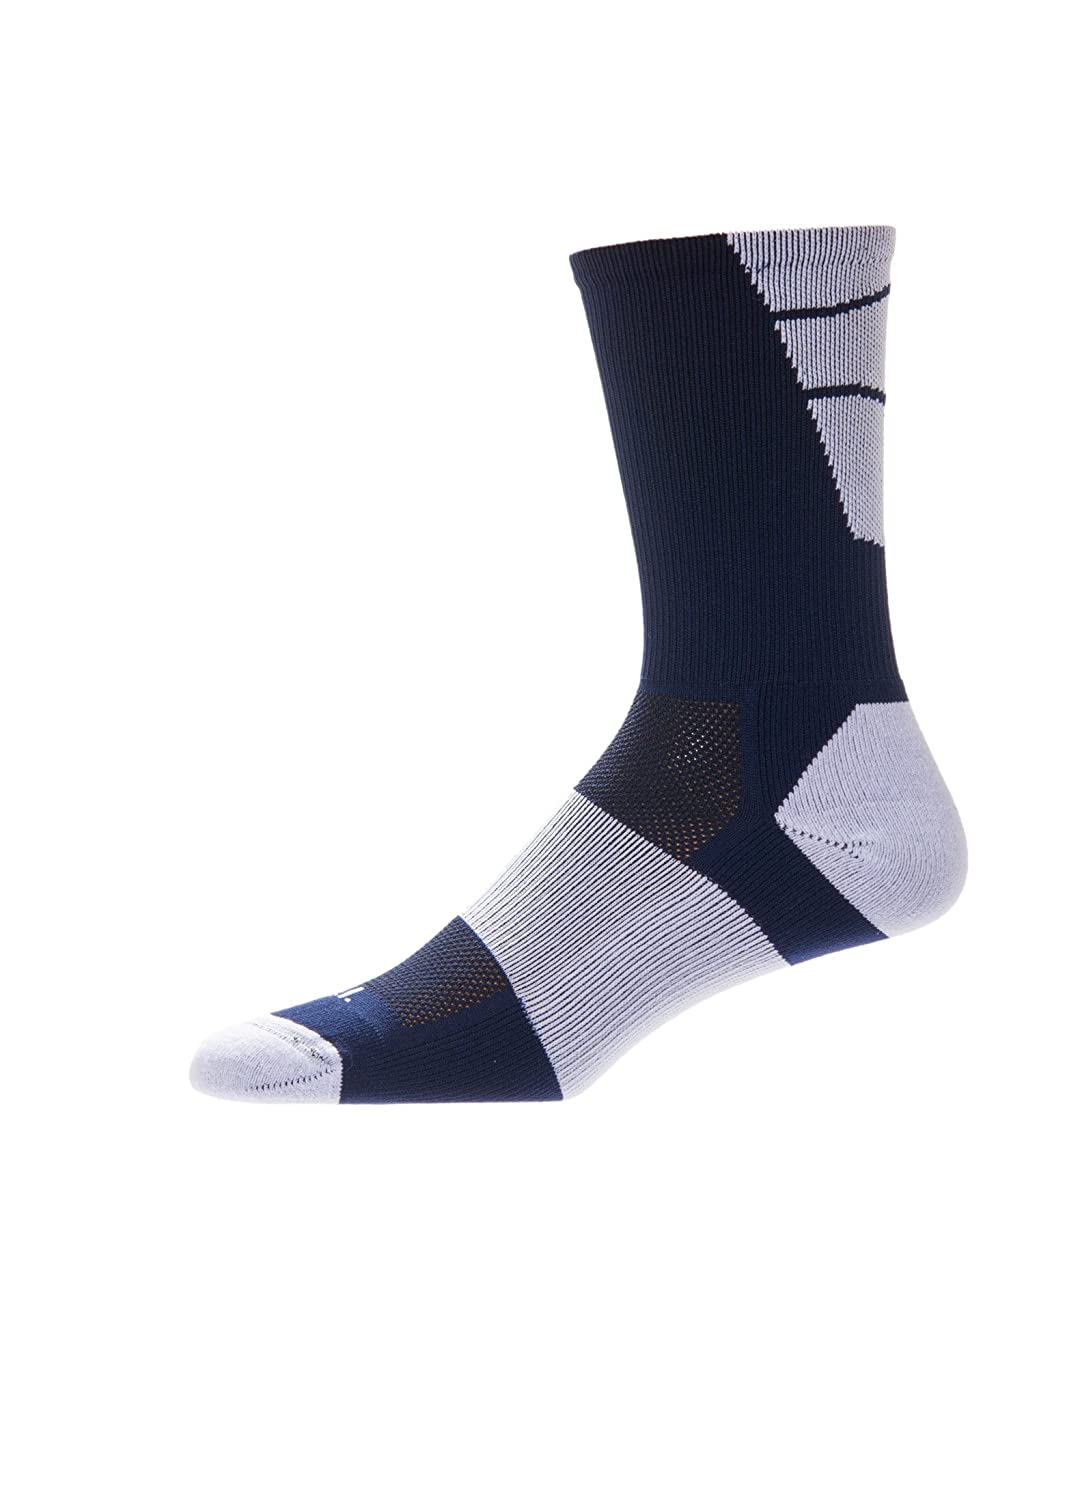 CSI Point Guard Performance Crew Socks Made In The USA Navy/White 6MAN8017